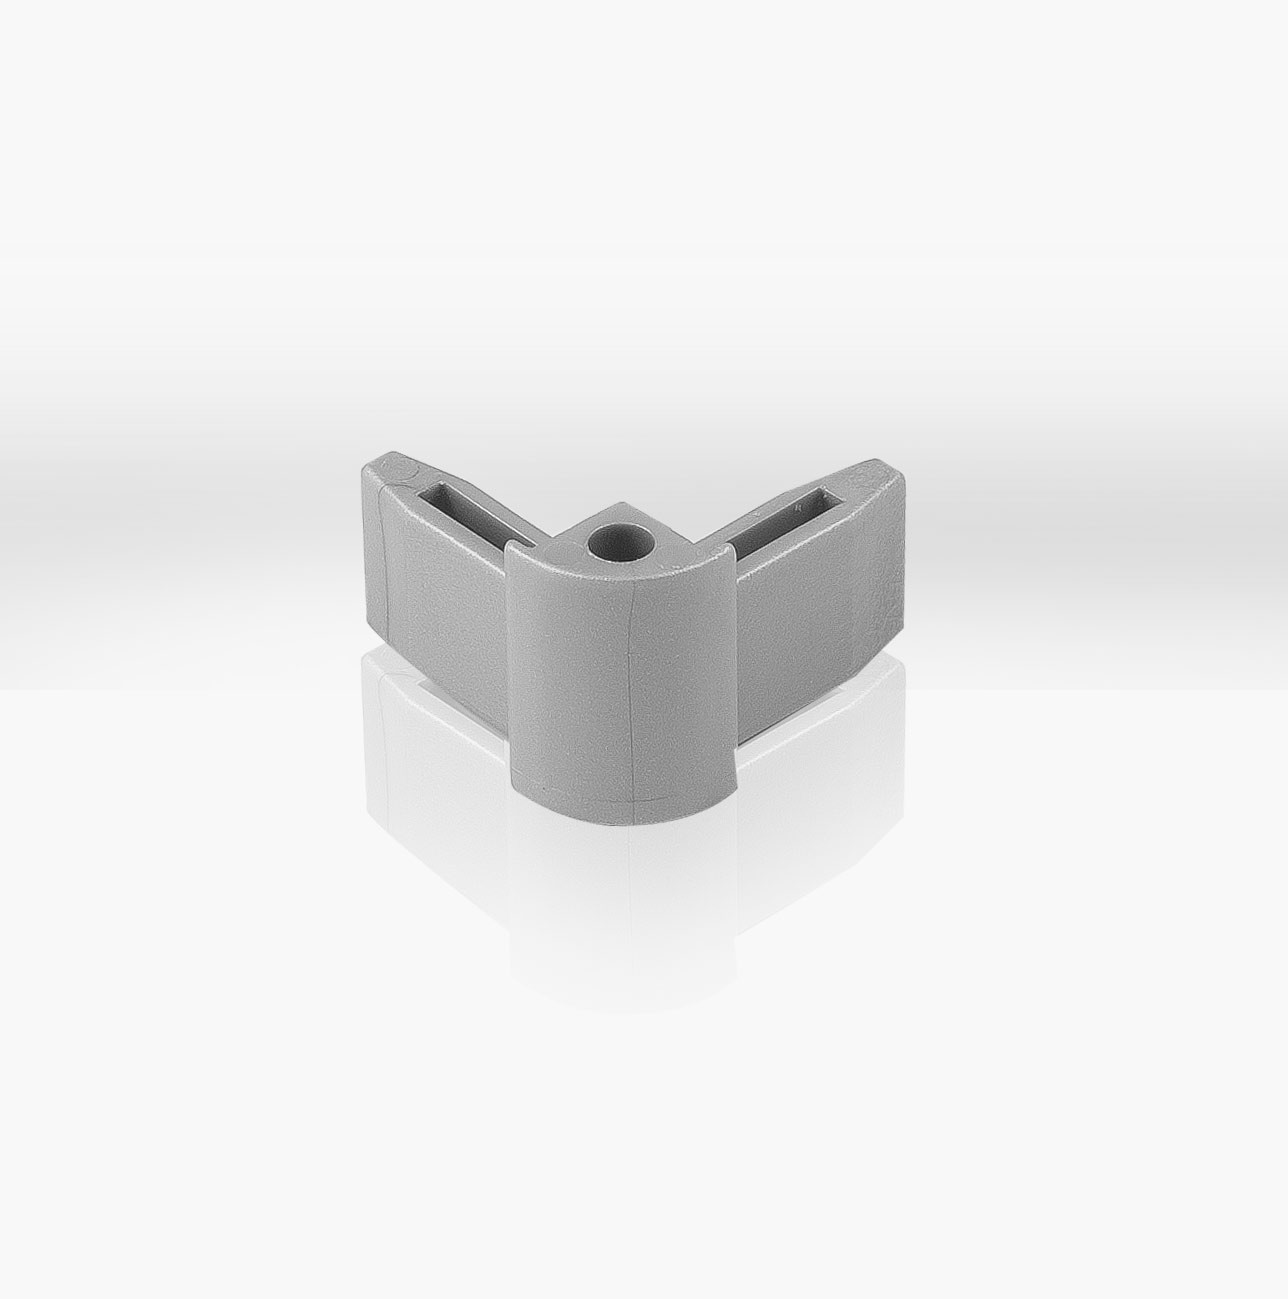 Corner connector for picture rails in white or gray